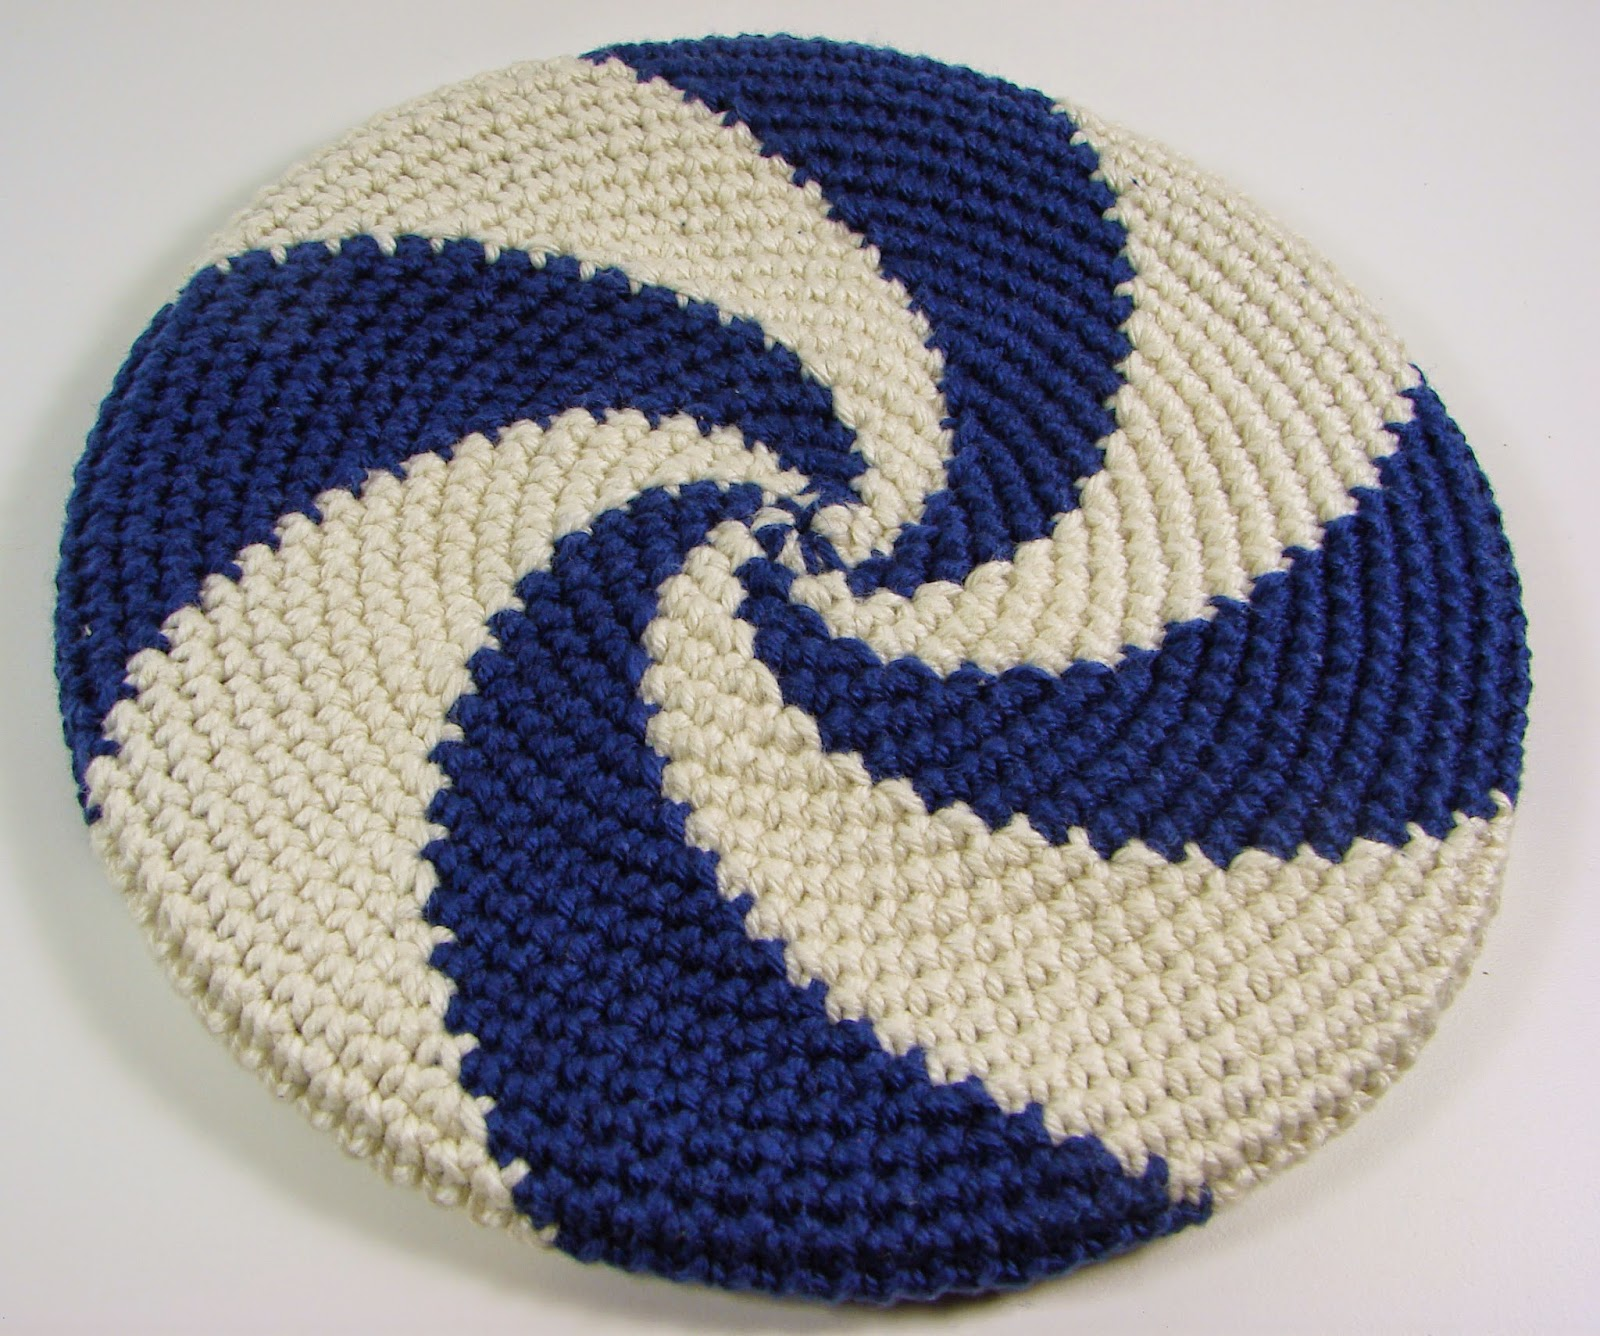 disc, frisbee, crochet, crocheted, toy, blue, white